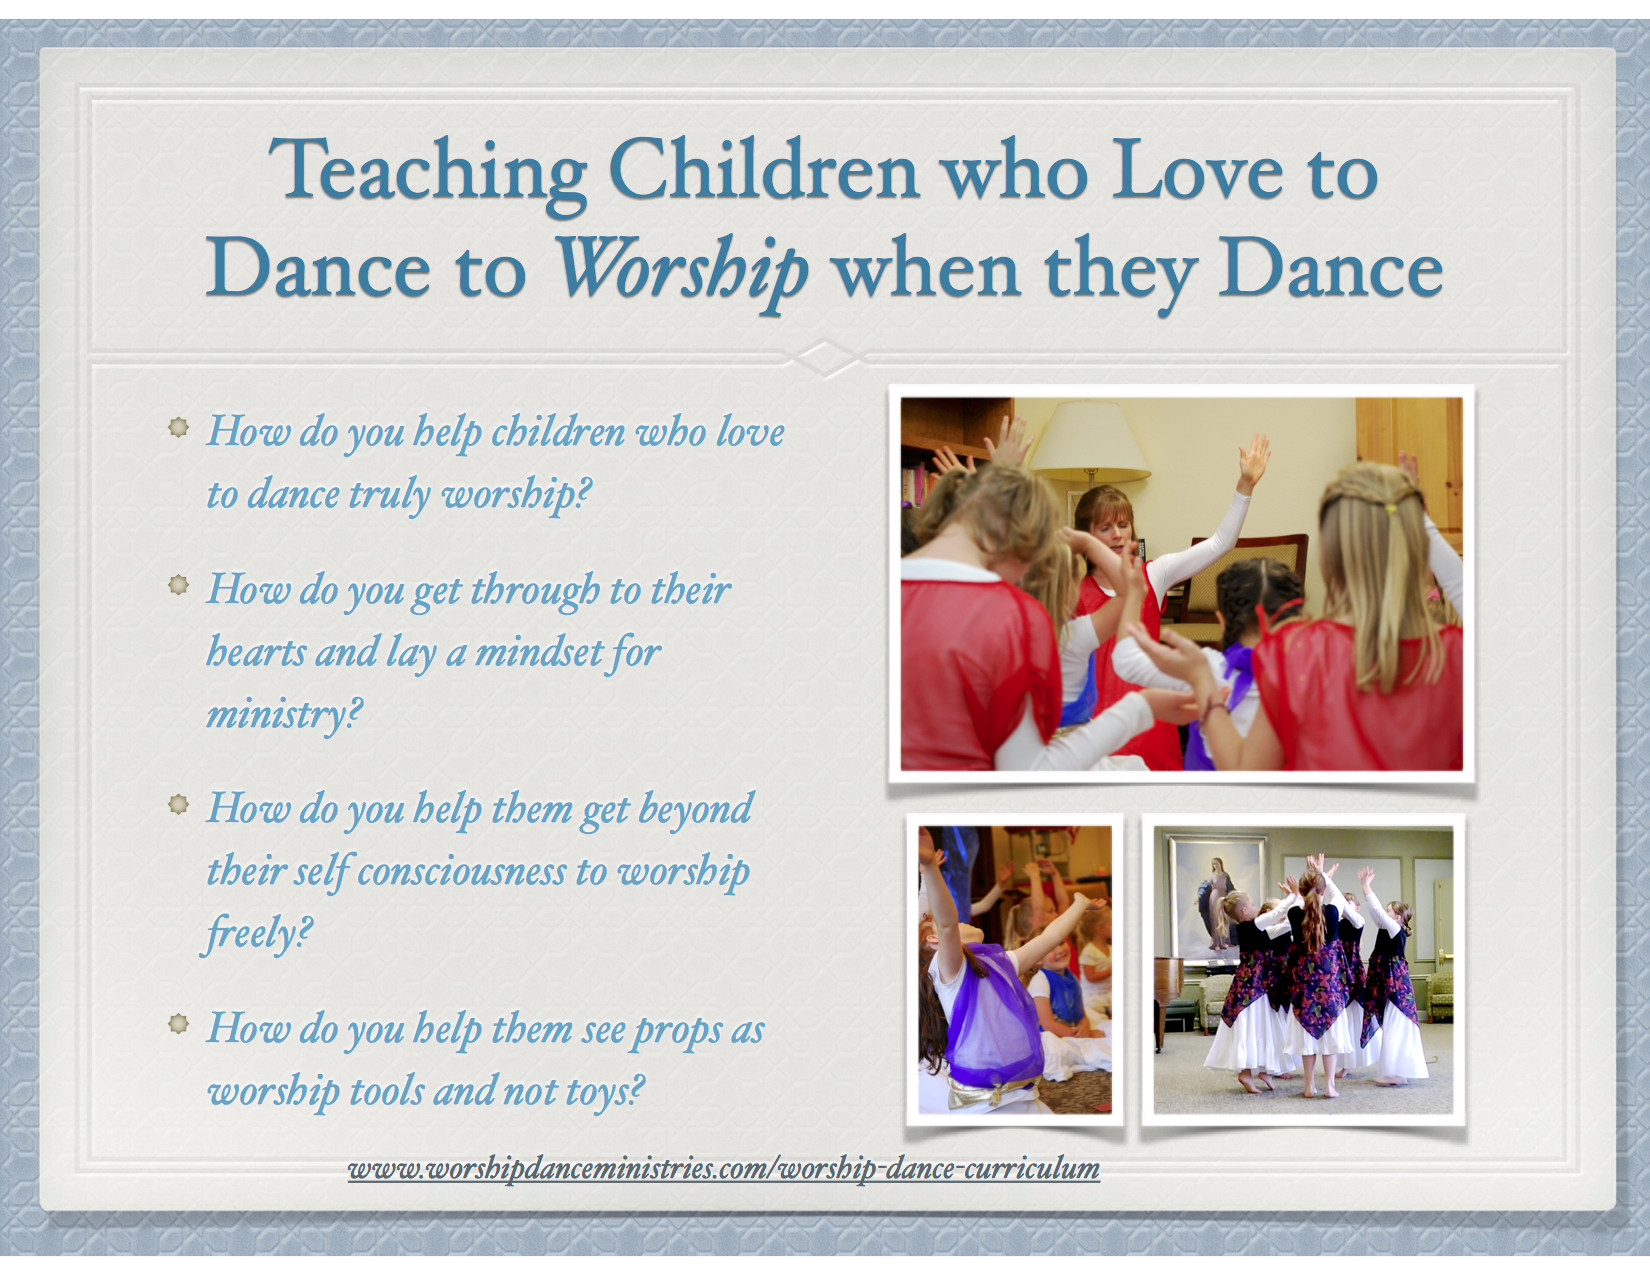 Raising Up Young Dancers who Truly Worship